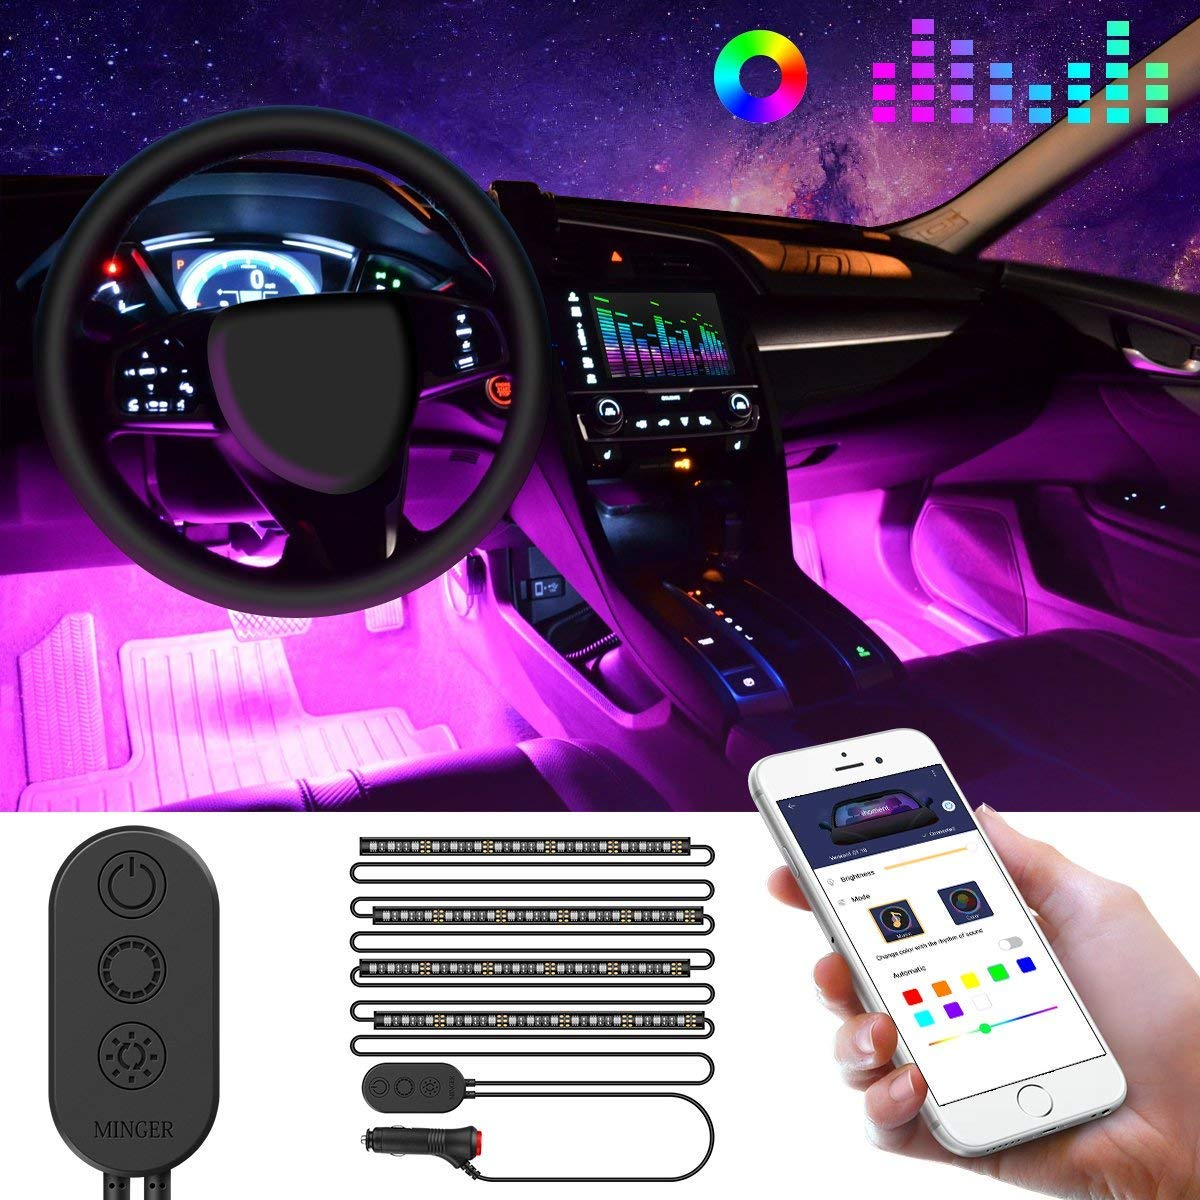 Car LED Strip Lights by APP Control, MINGER 48 LED Car Interior Lights Music Sound-activated Multi-color Under Dash Lighting Kit, Car Charger Included B0798KMJFG